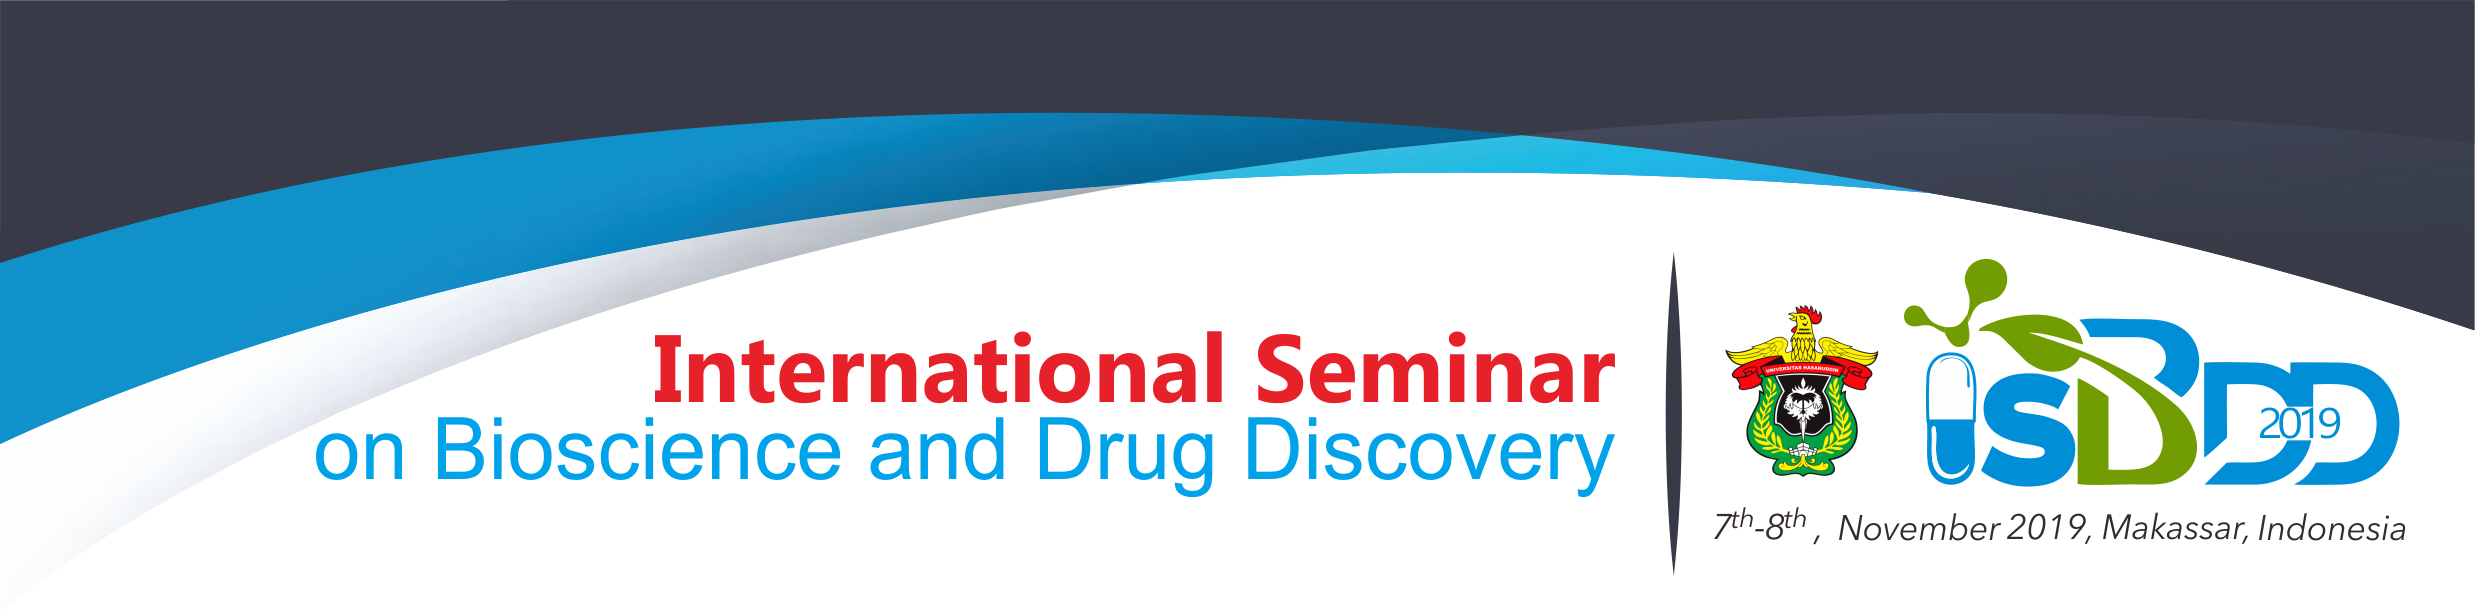 International Seminar on Bioscience and Drug Discovery